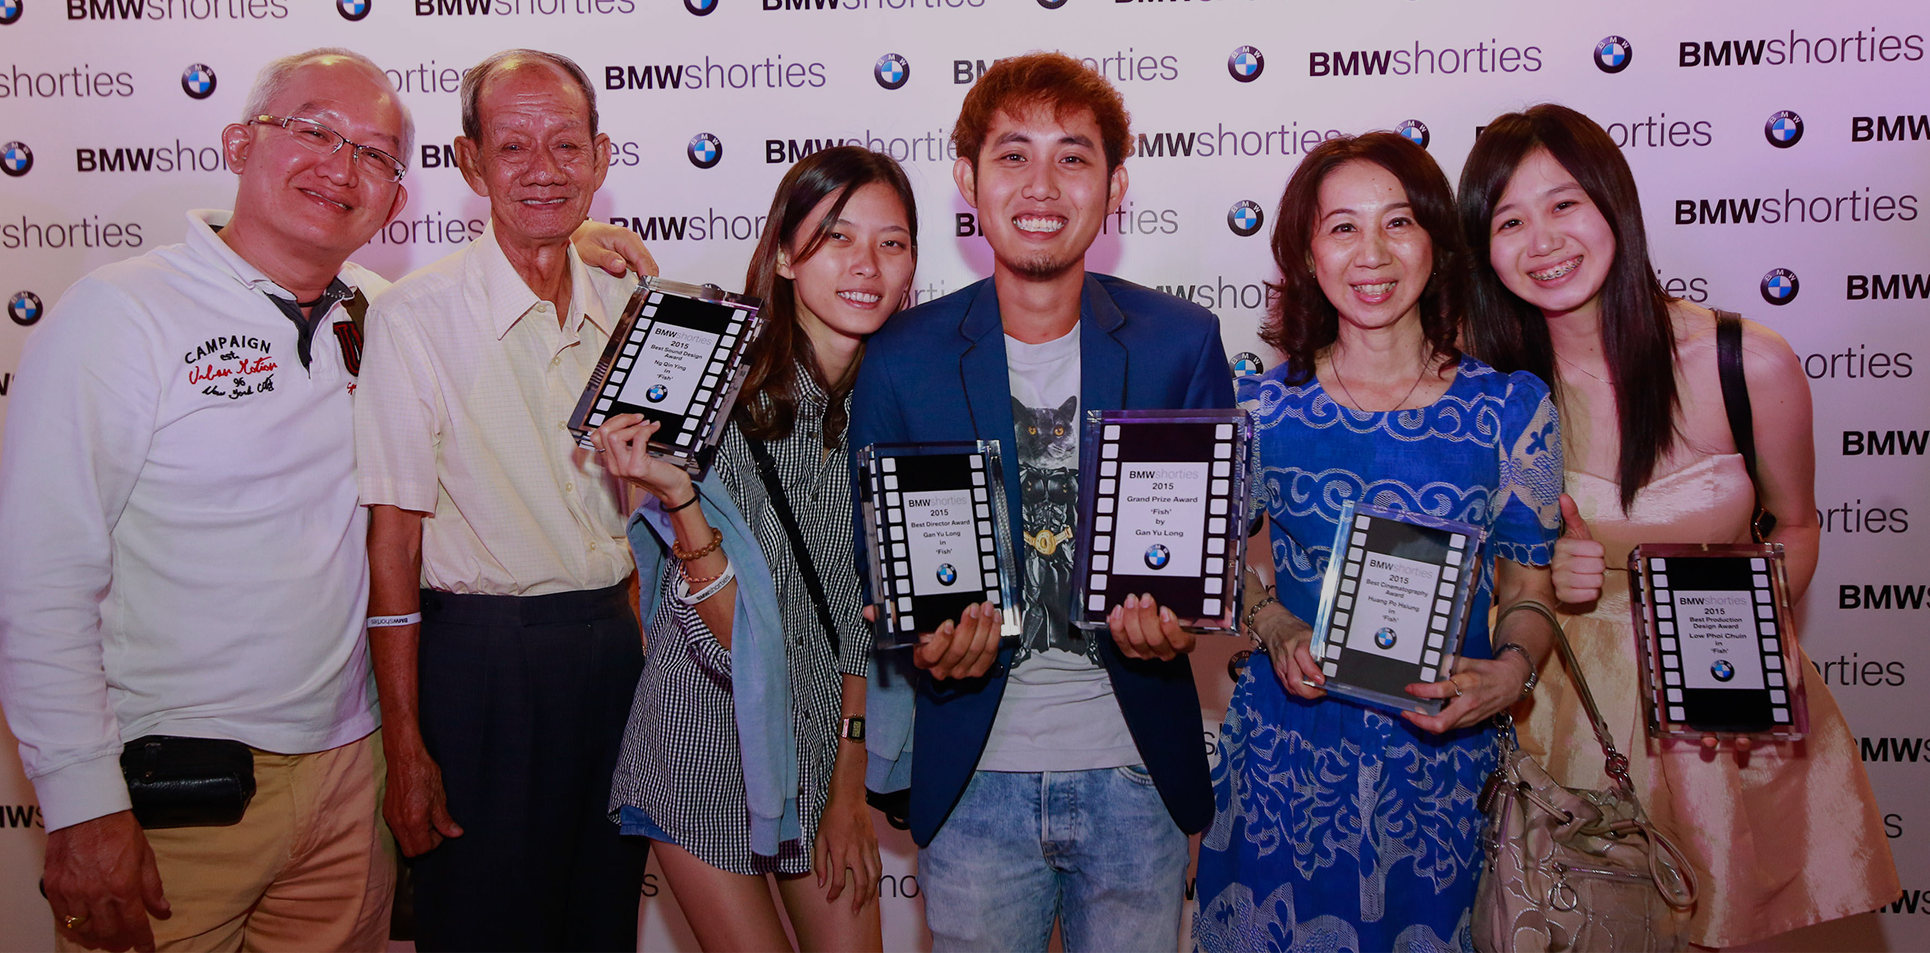 The BMW Shorties Returns for its 13th Year!